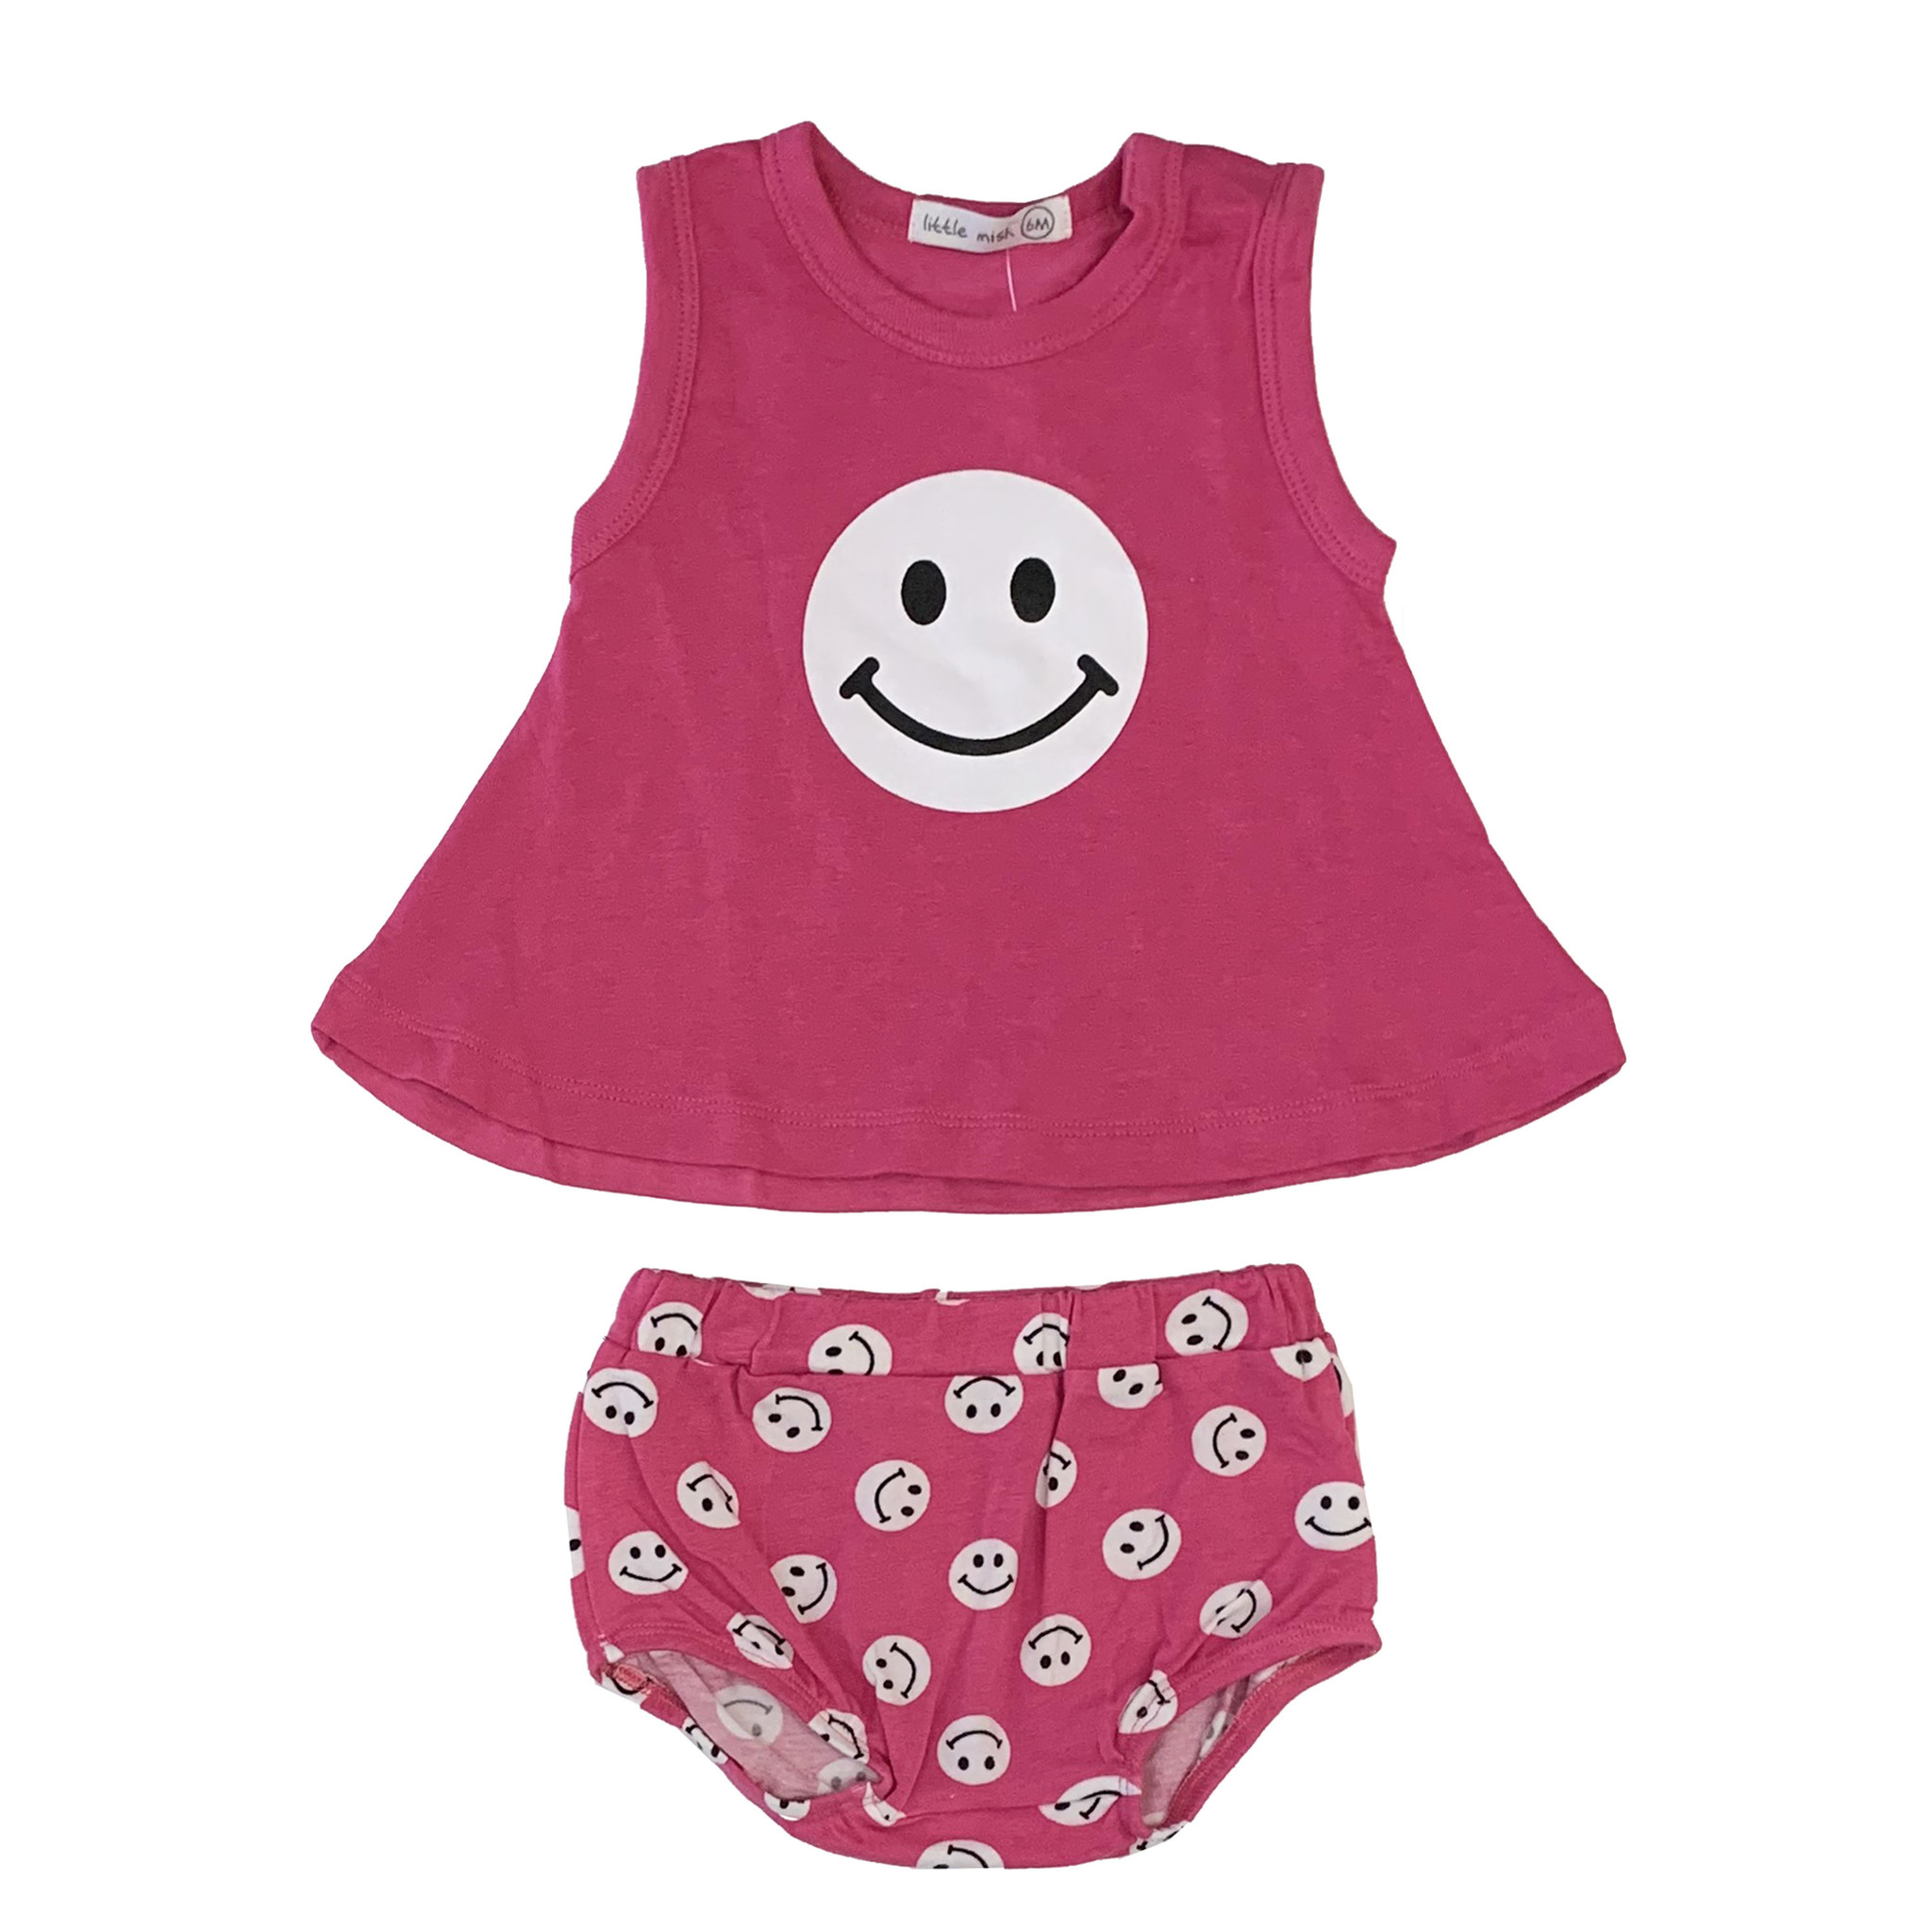 Little Mish Bubblegum Smiley Swing Diaper Set